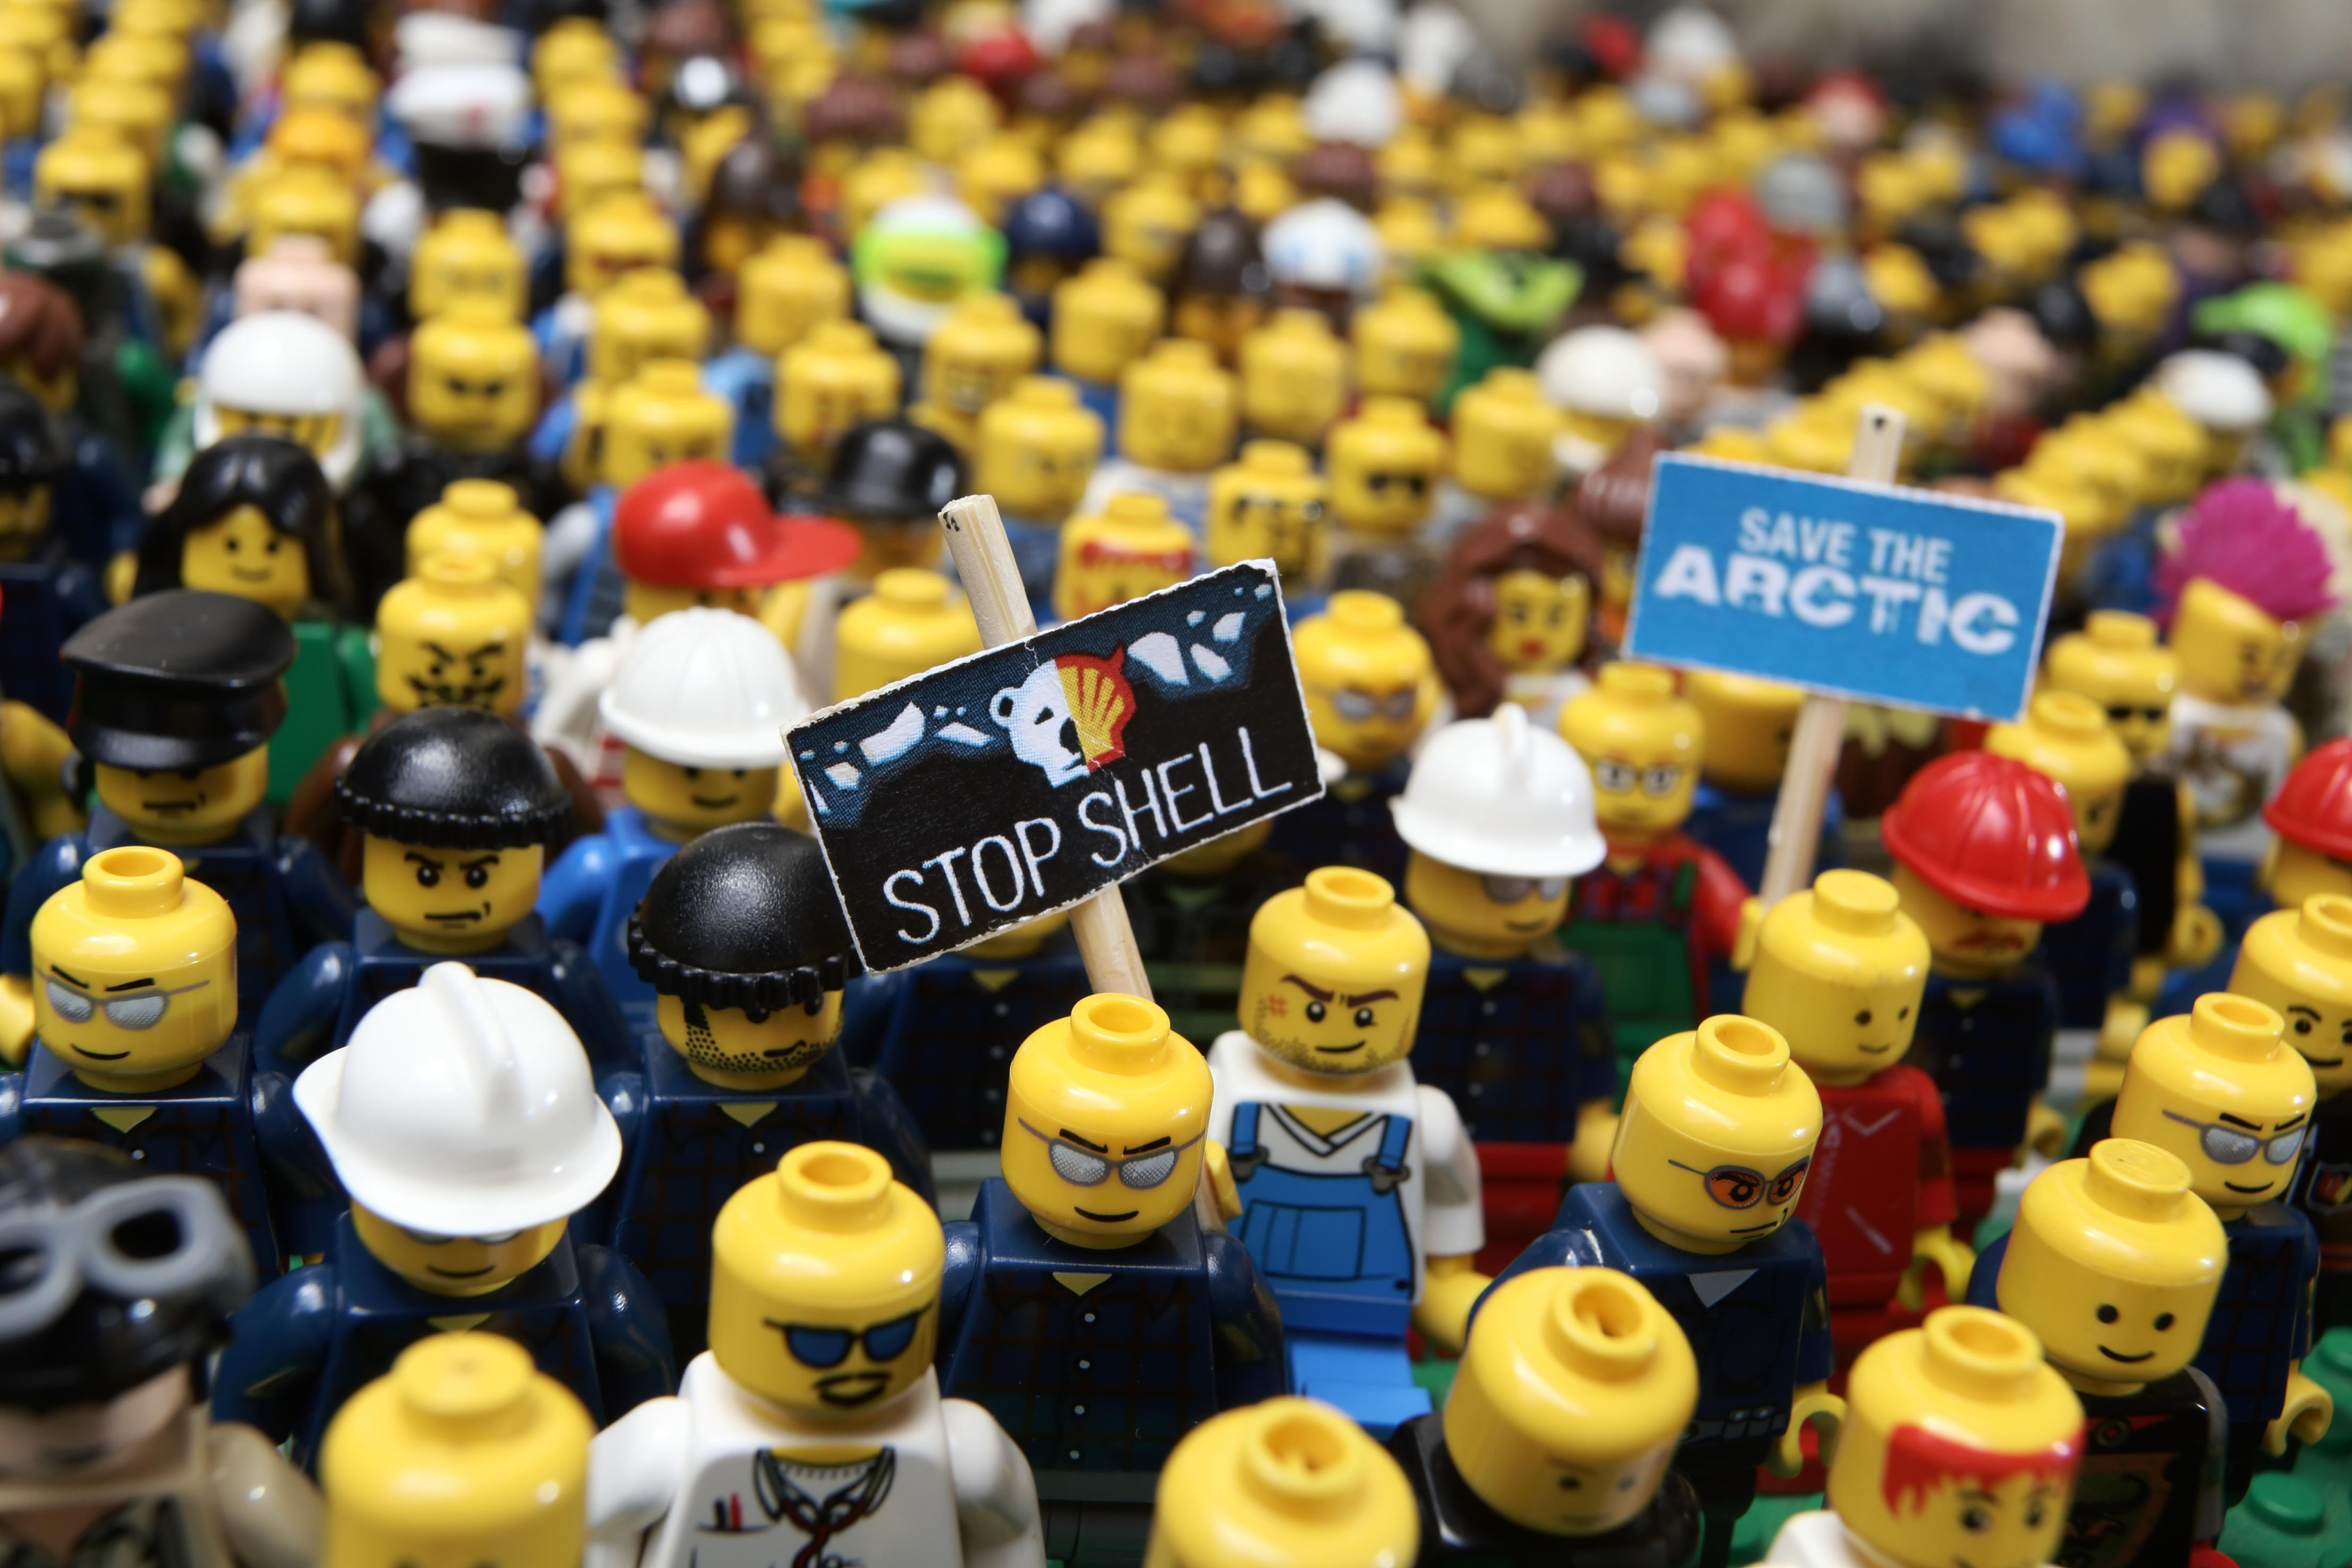 Oct 2014: Lego ended its contract with Shell